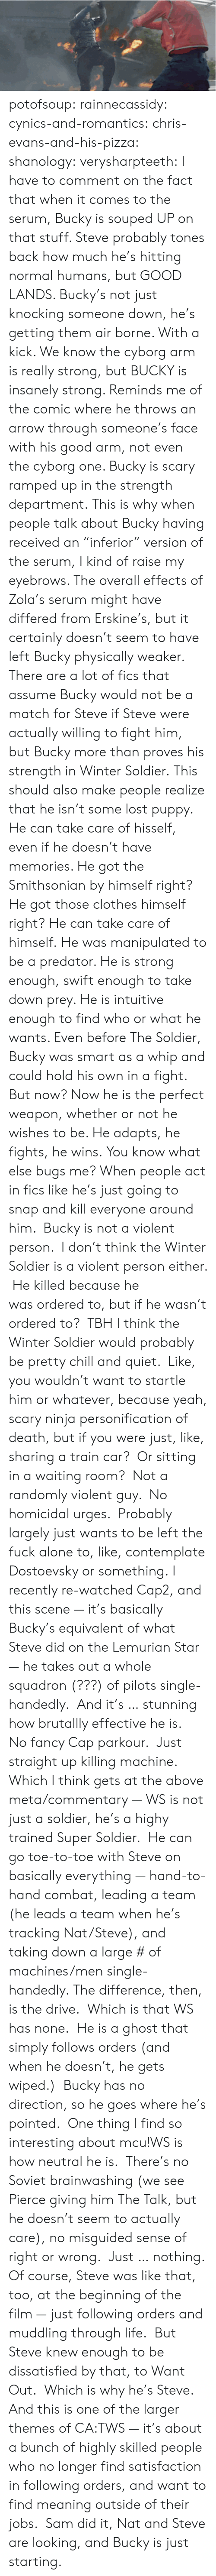 "Being Alone, Chill, and Chris Evans: potofsoup: rainnecassidy:  cynics-and-romantics:  chris-evans-and-his-pizza:  shanology:  verysharpteeth:  I have to comment on the fact that when it comes to the serum, Bucky is souped UP on that stuff. Steve probably tones back how much he's hitting normal humans, but GOOD LANDS. Bucky's not just knocking someone down, he's getting them air borne. With a kick. We know the cyborg arm is really strong, but BUCKY is insanely strong. Reminds me of the comic where he throws an arrow through someone's face with his good arm, not even the cyborg one. Bucky is scary ramped up in the strength department.  This is why when people talk about Bucky having received an ""inferior"" version of the serum, I kind of raise my eyebrows. The overall effects of Zola's serum might have differed from Erskine's, but it certainly doesn't seem to have left Bucky physically weaker. There are a lot of fics that assume Bucky would not be a match for Steve if Steve were actually willing to fight him, but Bucky more than proves his strength in Winter Soldier.  This should also make people realize that he isn't some lost puppy. He can take care of hisself, even if he doesn't have memories. He got the Smithsonian by himself right? He got those clothes himself right? He can take care of himself.  He was manipulated to be a predator. He is strong enough, swift enough to take down prey. He is intuitive enough to find who or what he wants. Even before The Soldier, Bucky was smart as a whip and could hold his own in a fight. But now? Now he is the perfect weapon, whether or not he wishes to be. He adapts, he fights, he wins.  You know what else bugs me? When people act in fics like he's just going to snap and kill everyone around him.  Bucky is not a violent person.  I don't think the Winter Soldier is a violent person either.  He killed because he was ordered to, but if he wasn't ordered to?  TBH I think the Winter Soldier would probably be pretty chill and quiet.  Like, you wouldn't want to startle him or whatever, because yeah, scary ninja personification of death, but if you were just, like, sharing a train car?  Or sitting in a waiting room?  Not a randomly violent guy.  No homicidal urges.  Probably largely just wants to be left the fuck alone to, like, contemplate Dostoevsky or something.  I recently re-watched Cap2, and this scene — it's basically Bucky's equivalent of what Steve did on the Lemurian Star — he takes out a whole squadron (???) of pilots single-handedly.  And it's … stunning how brutallly effective he is.  No fancy Cap parkour.  Just straight up killing machine. Which I think gets at the above meta/commentary — WS is not just a soldier, he's a highy trained Super Soldier.  He can go toe-to-toe with Steve on basically everything — hand-to-hand combat, leading a team (he leads a team when he's tracking Nat/Steve), and taking down a large # of machines/men single-handedly. The difference, then, is the drive.  Which is that WS has none.  He is a ghost that simply follows orders (and when he doesn't, he gets wiped.)  Bucky has no direction, so he goes where he's pointed.  One thing I find so interesting about mcu!WS is how neutral he is.  There's no Soviet brainwashing (we see Pierce giving him The Talk, but he doesn't seem to actually care), no misguided sense of right or wrong.  Just … nothing. Of course, Steve was like that, too, at the beginning of the film — just following orders and muddling through life.  But Steve knew enough to be dissatisfied by that, to Want Out.  Which is why he's Steve. And this is one of the larger themes of CA:TWS — it's about a bunch of highly skilled people who no longer find satisfaction in following orders, and want to find meaning outside of their jobs.  Sam did it, Nat and Steve are looking, and Bucky is just starting."